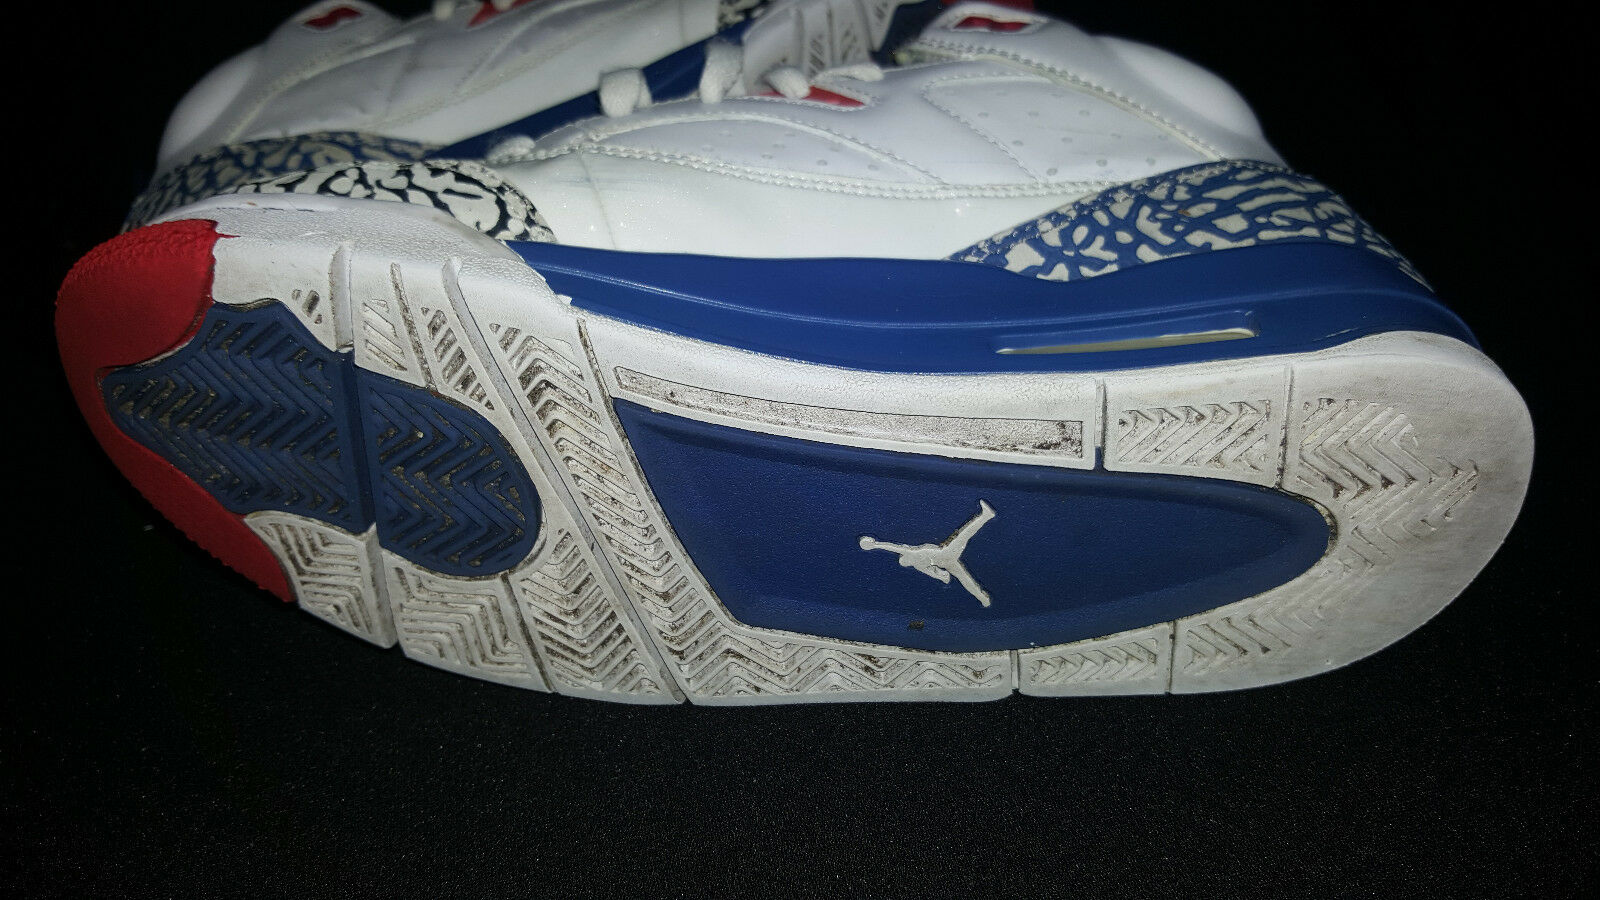 more photos 9f7ec 82428 ... JORDAN 2013 SON SON SON MARS Ture Blue Fire Cement White Sz 7.5  Blue Red ...